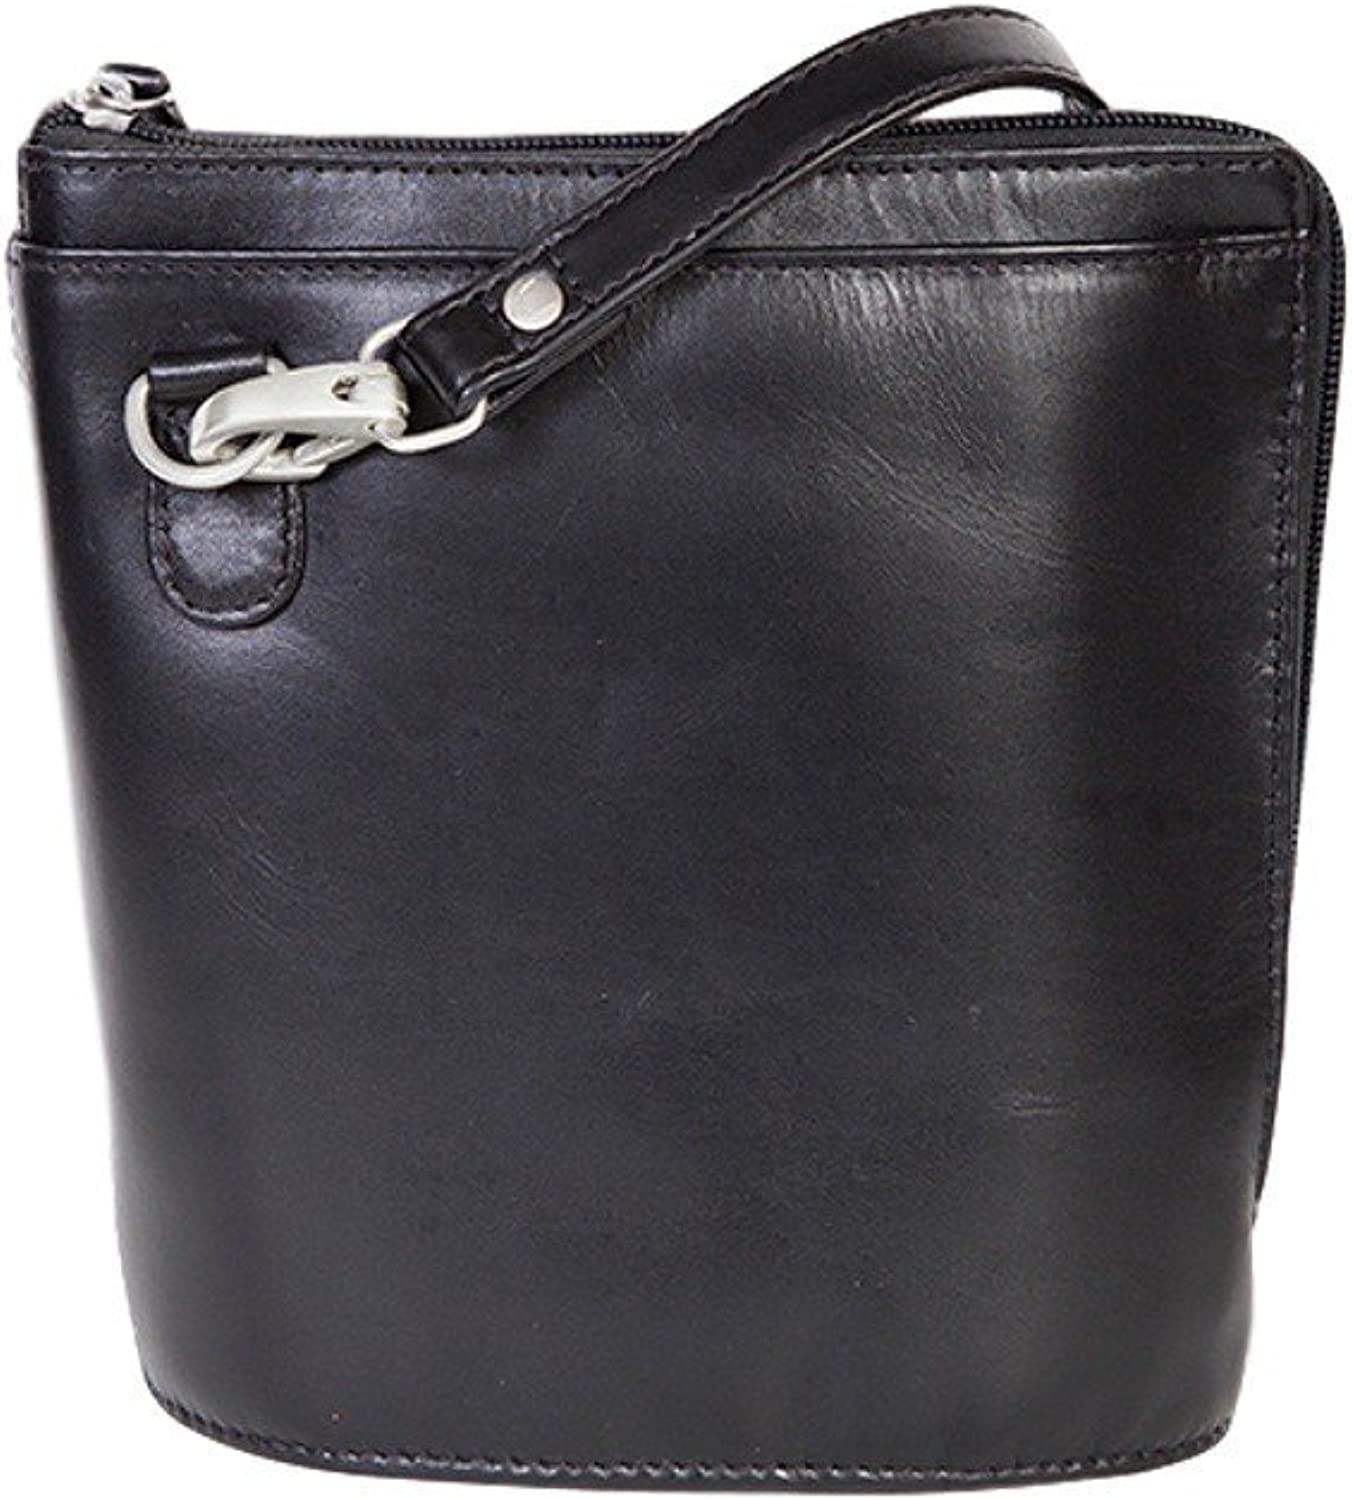 Scully Western Handbag Womens Leather Two Way Zip Adjustable Strap 521